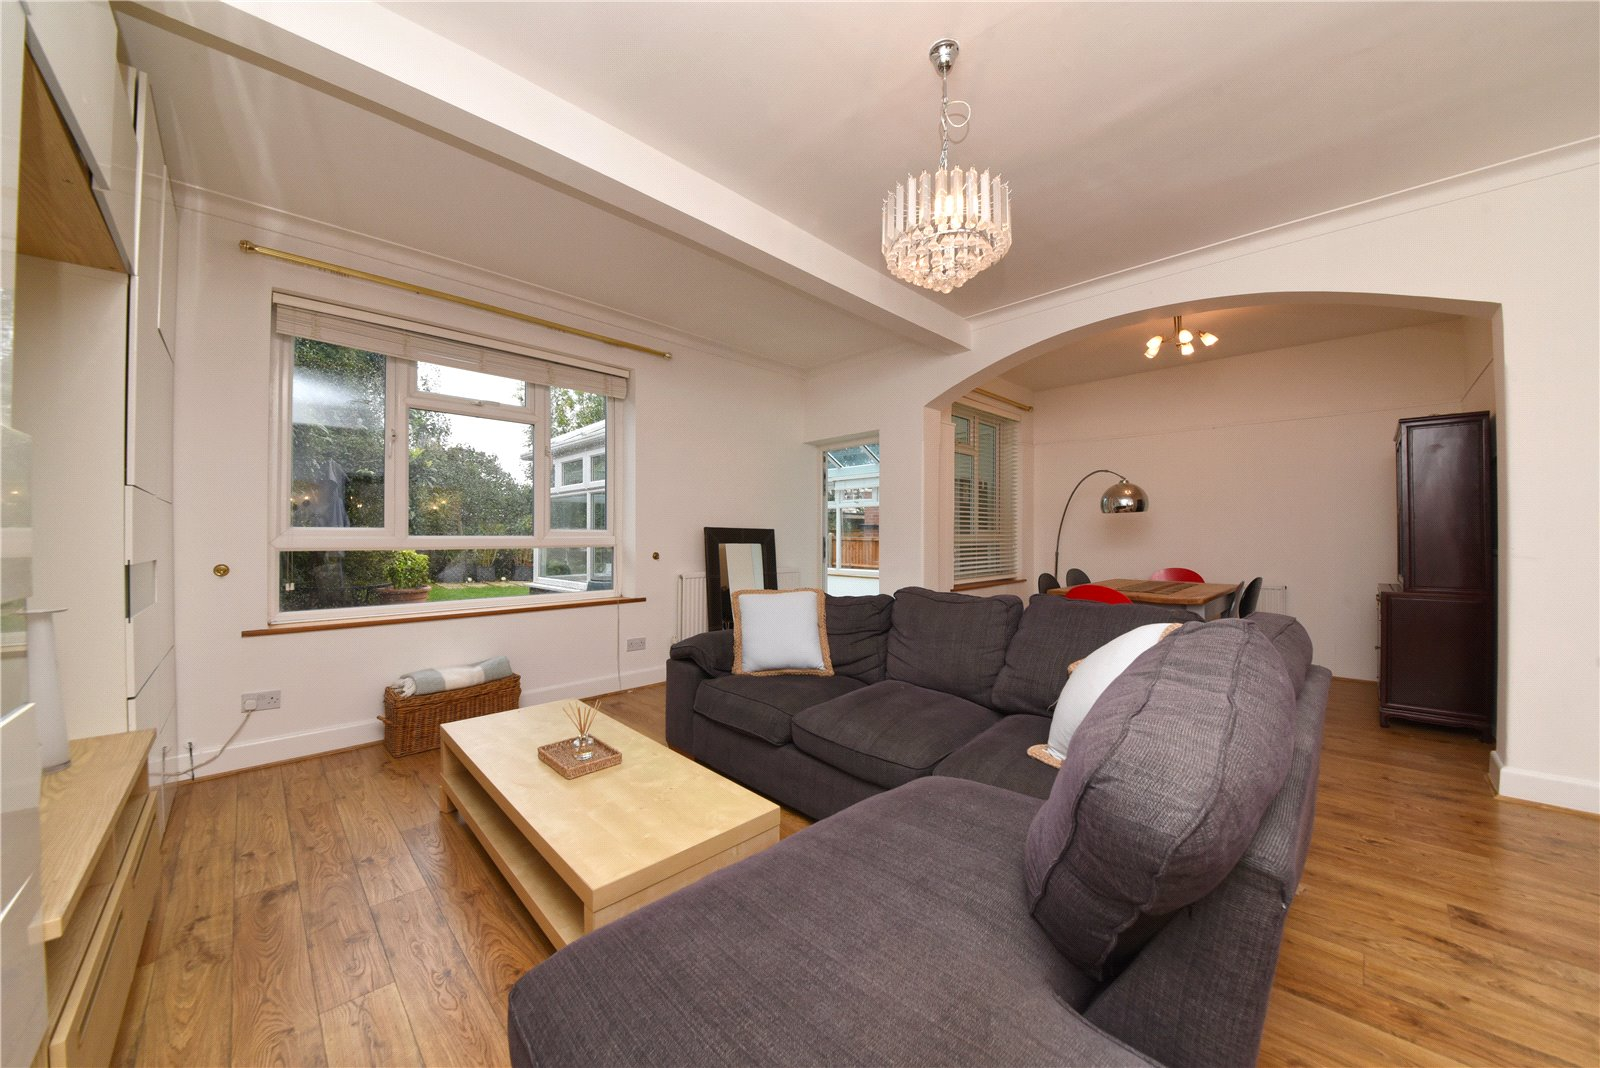 3 bed house for sale in High Barnet, EN5 1AL 6